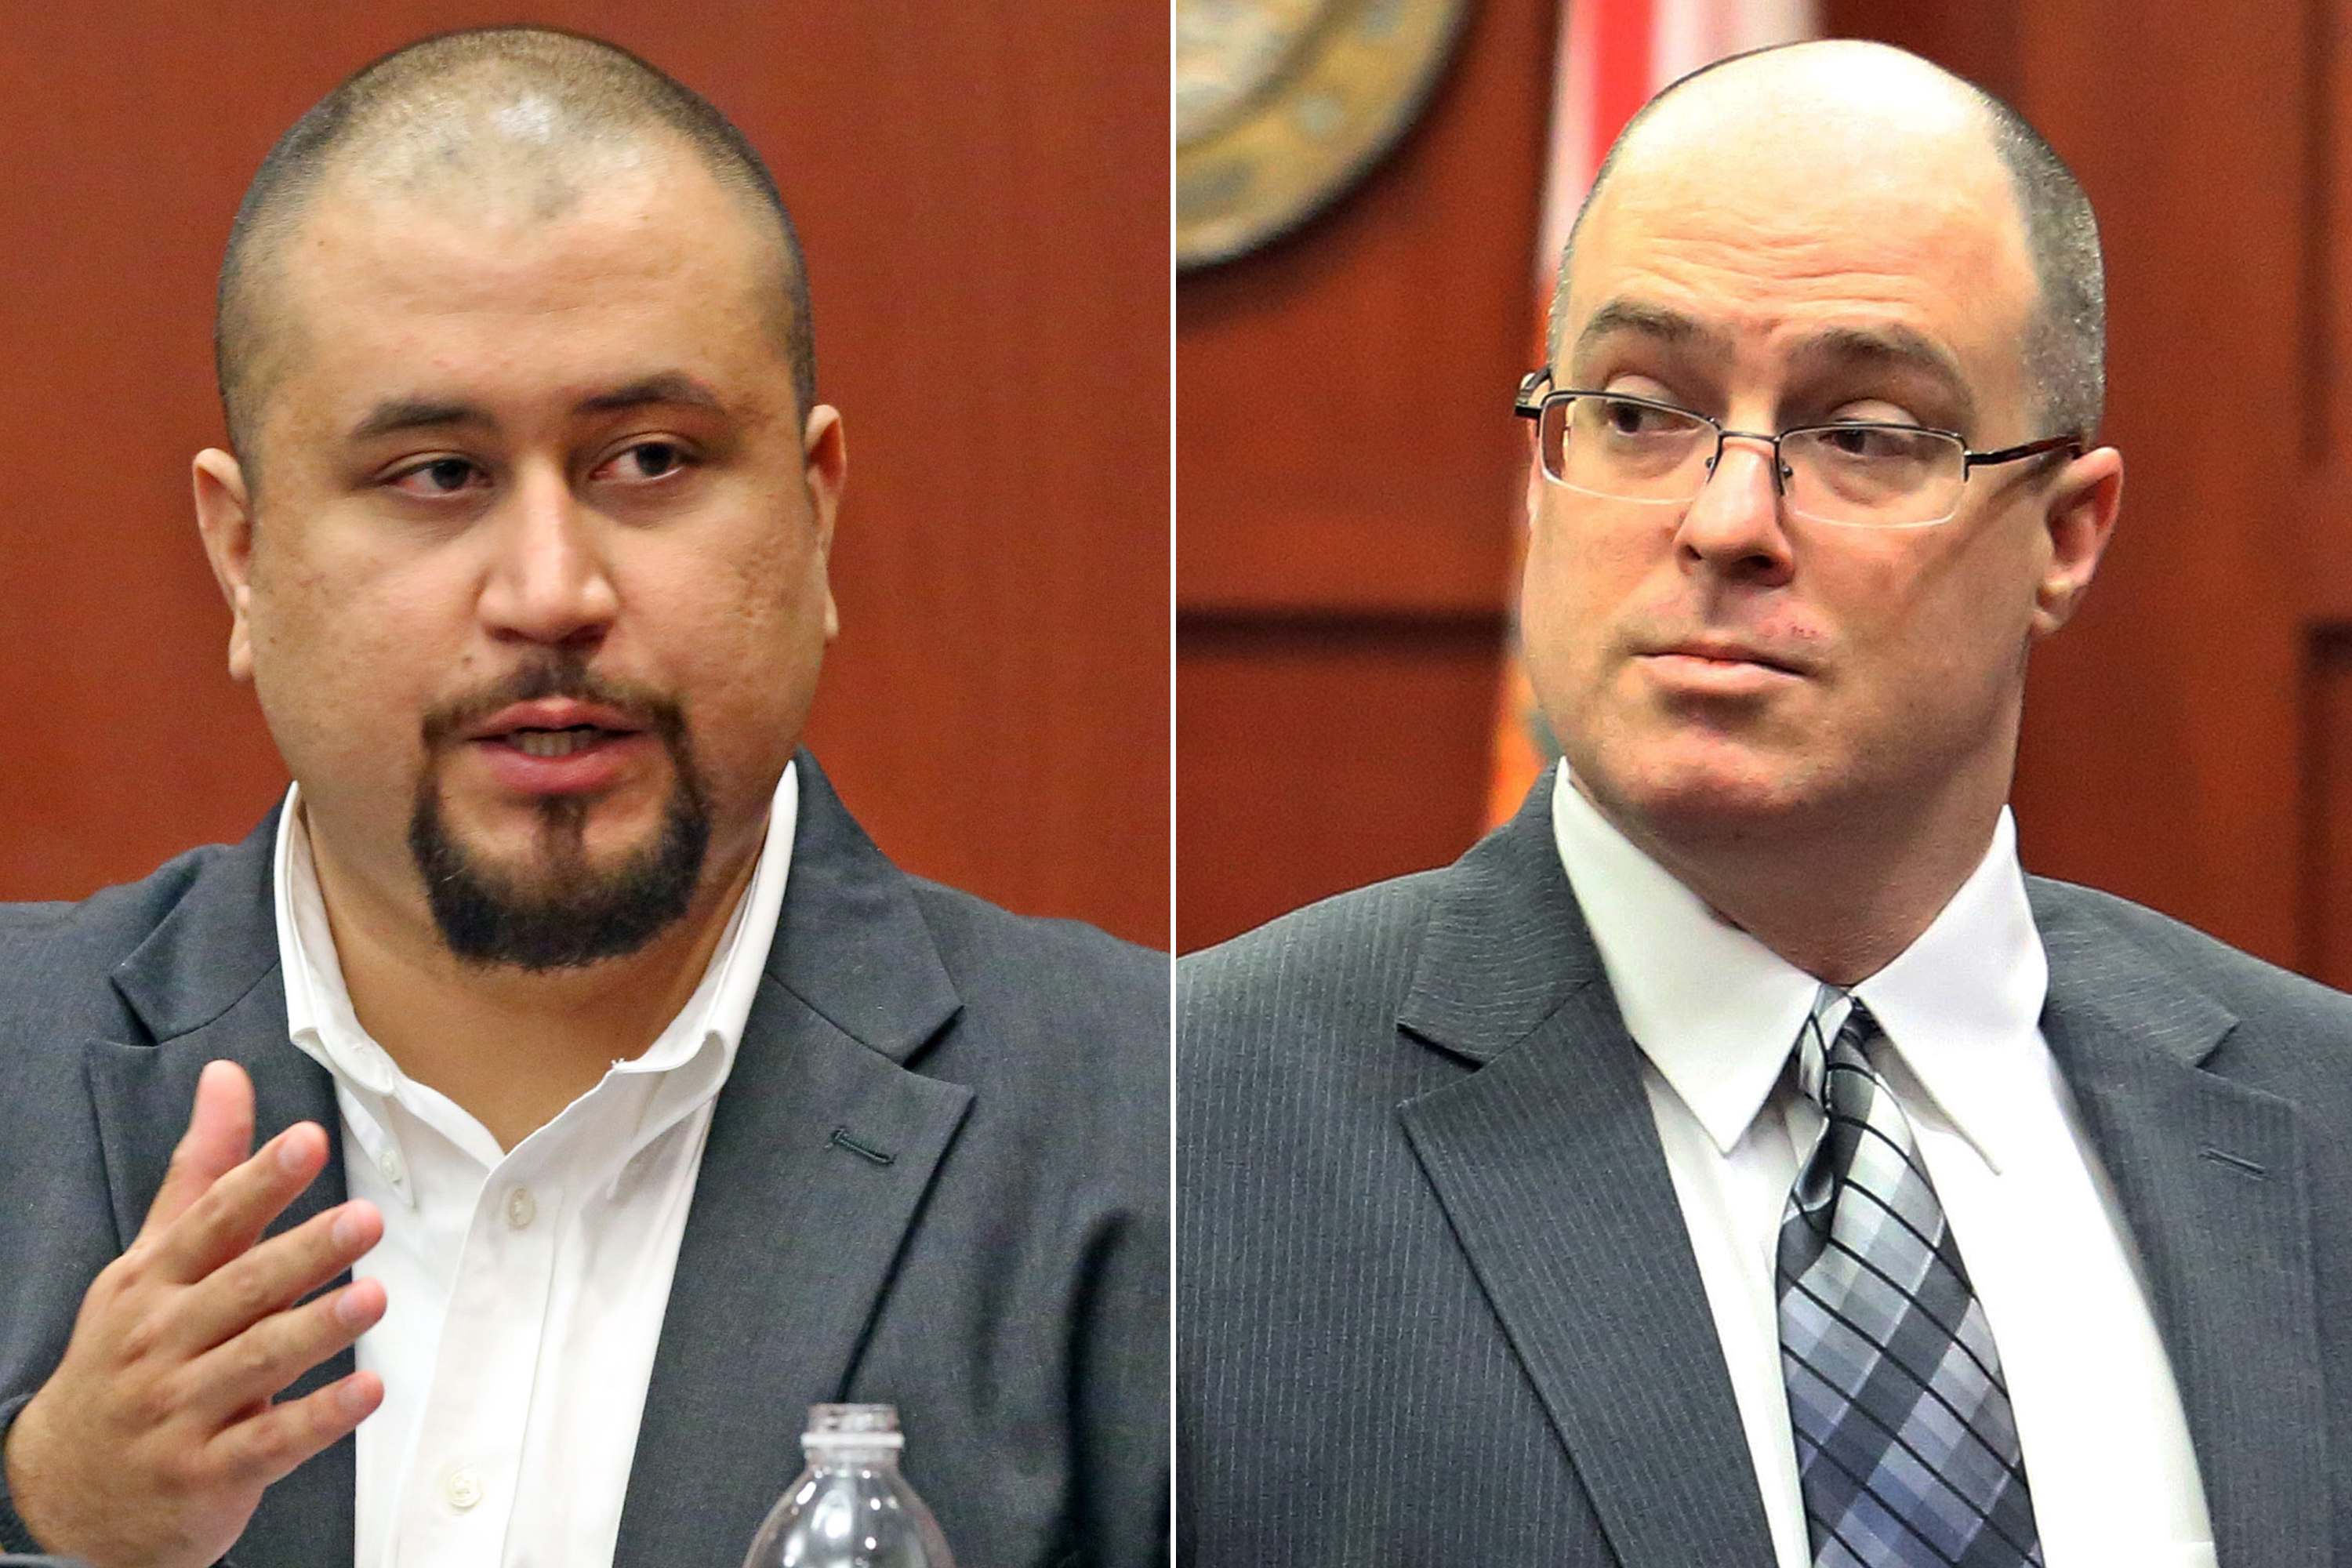 George Zimmerman (l) and Matthew Apperson (r) during a trial at Seminole County courtroom in Sanford, Fla., on Sept. 16, 2016. Apperson is accused of trying to kill George Zimmerman by shooting into his truck during a road rage dispute on Lake Mary Boulevard last year.